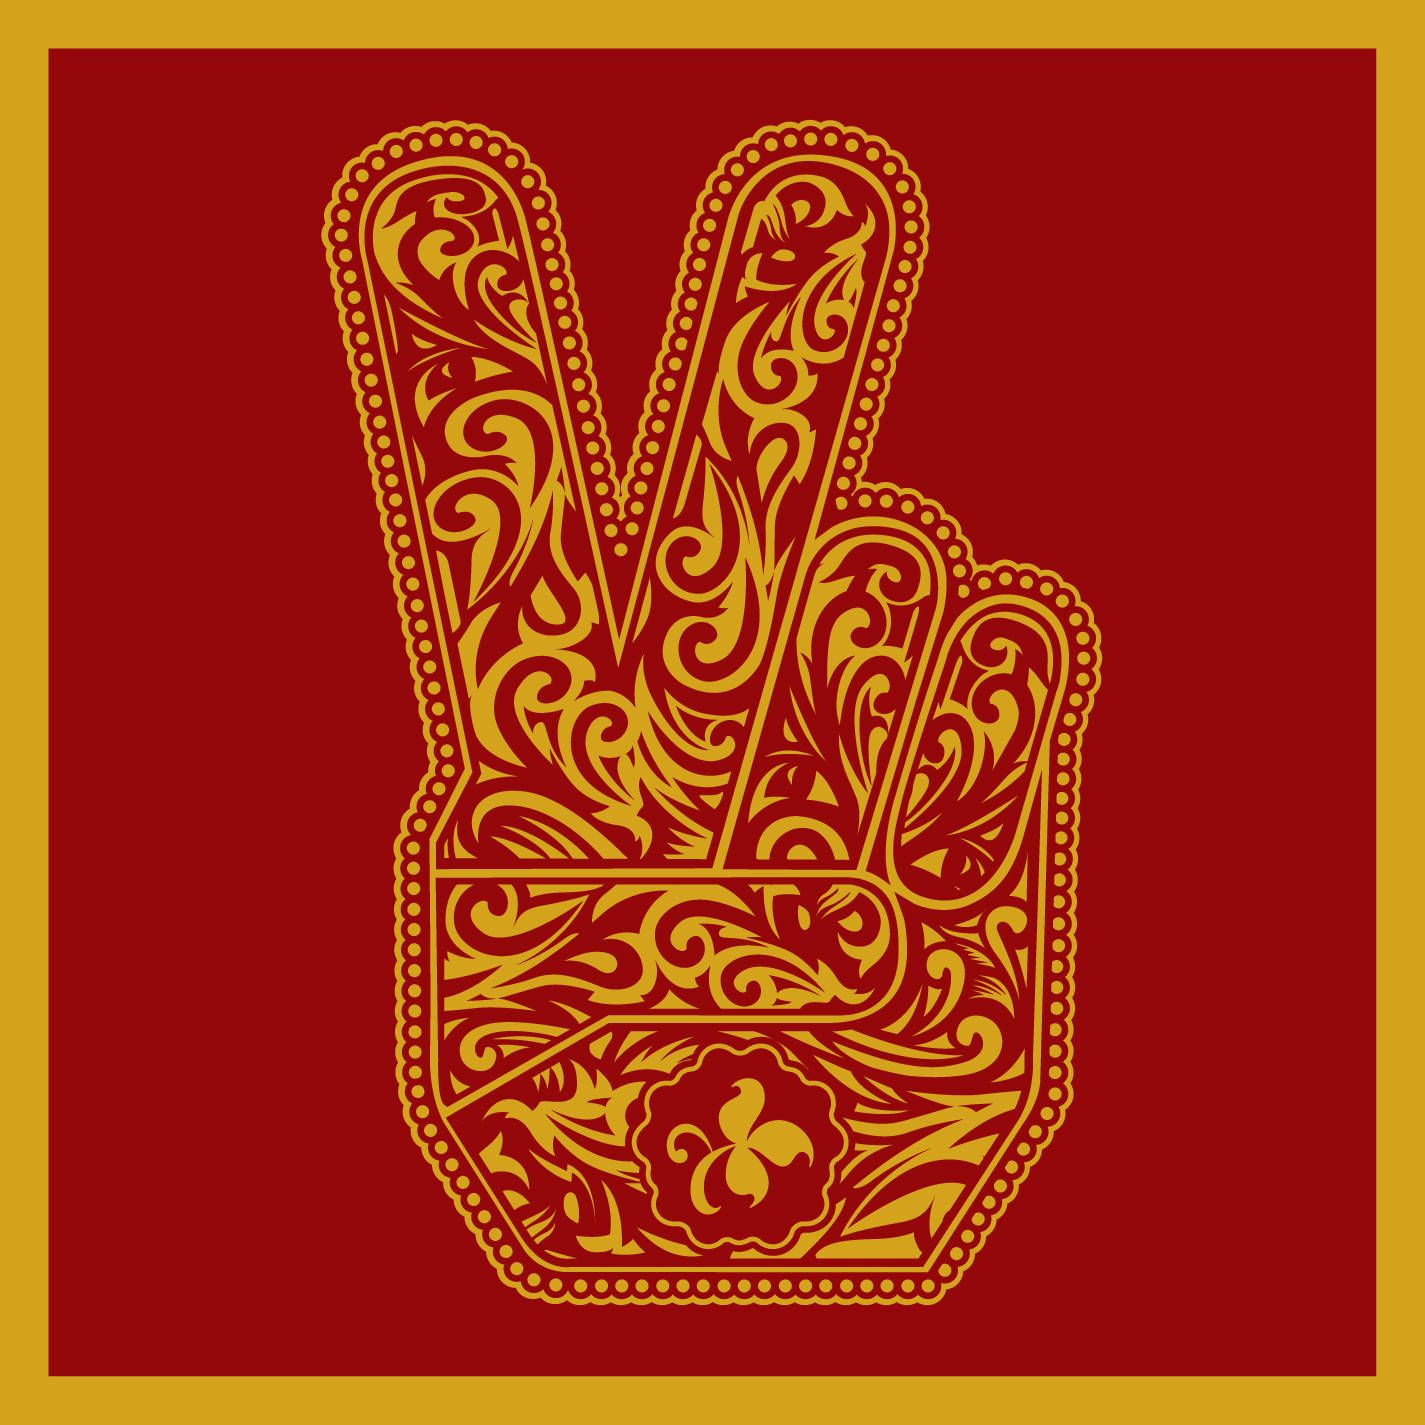 Pin By Leah Meiterman On Peace Stone Temple Pilots Albums Stone Temple Pilots Album Cover Art